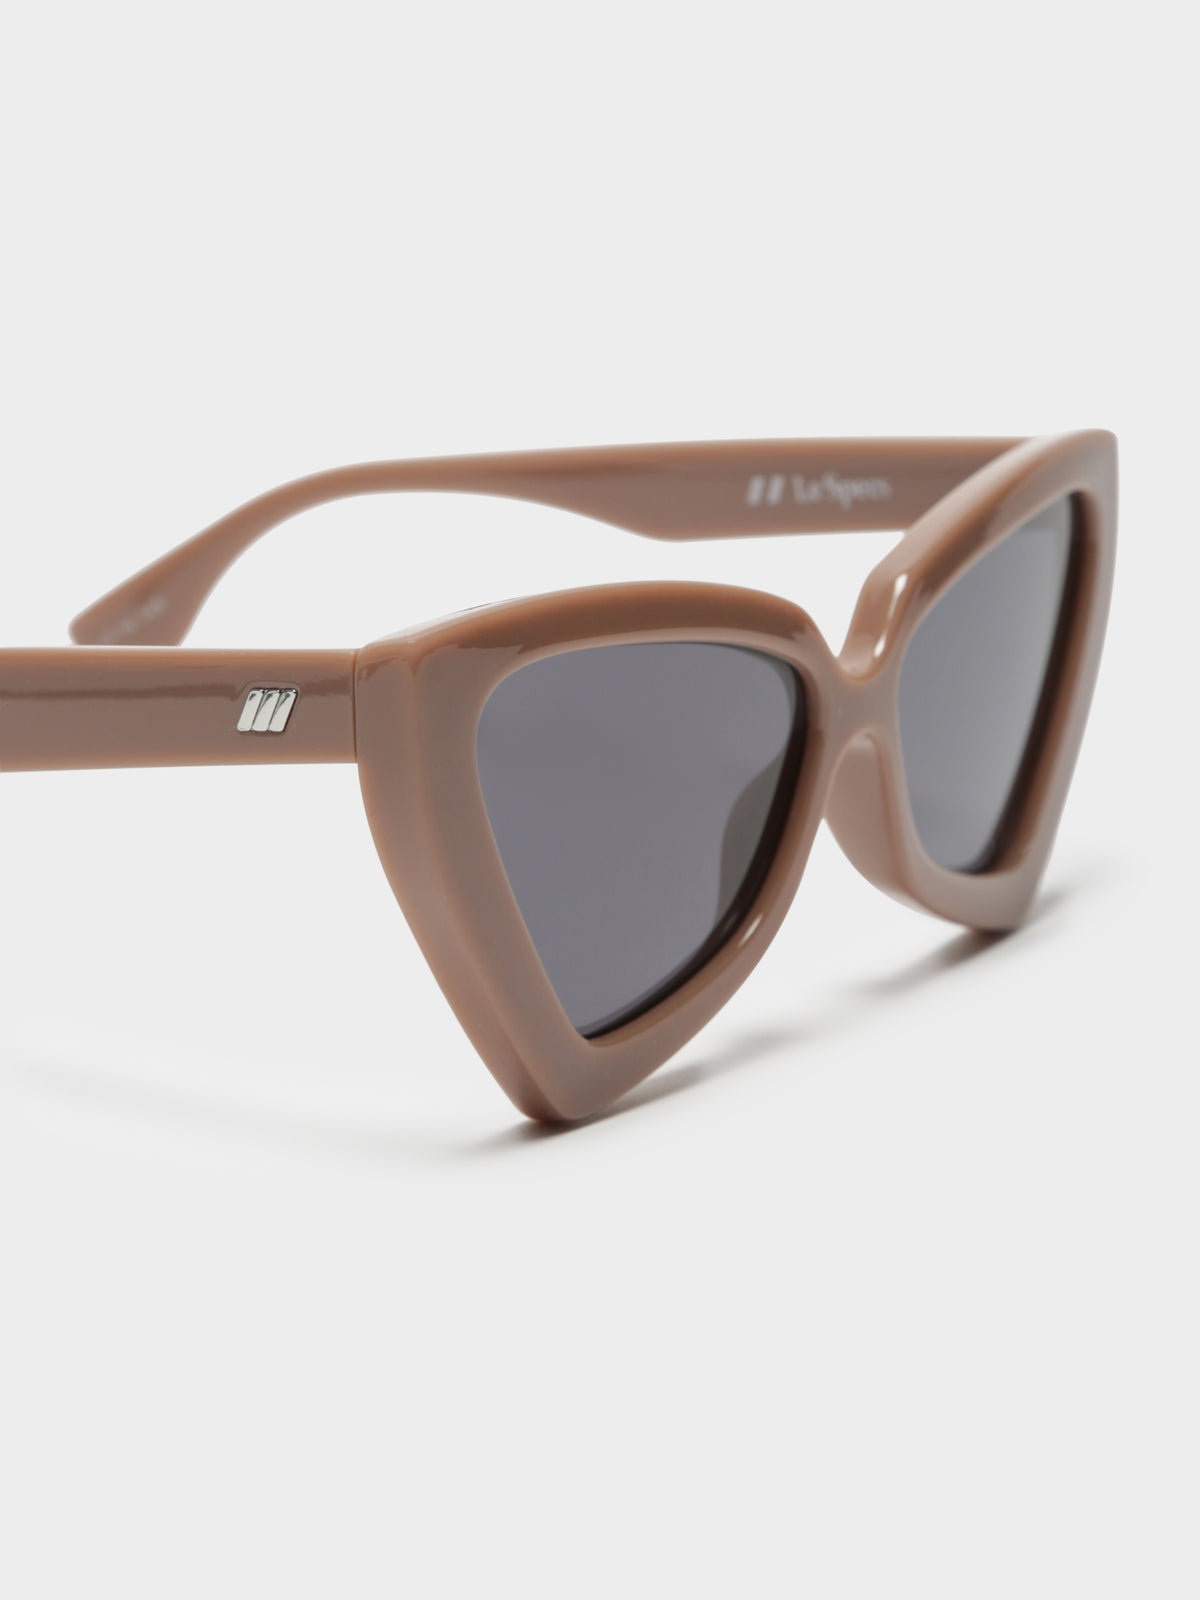 Rinky Dink Sunglasses in Stone